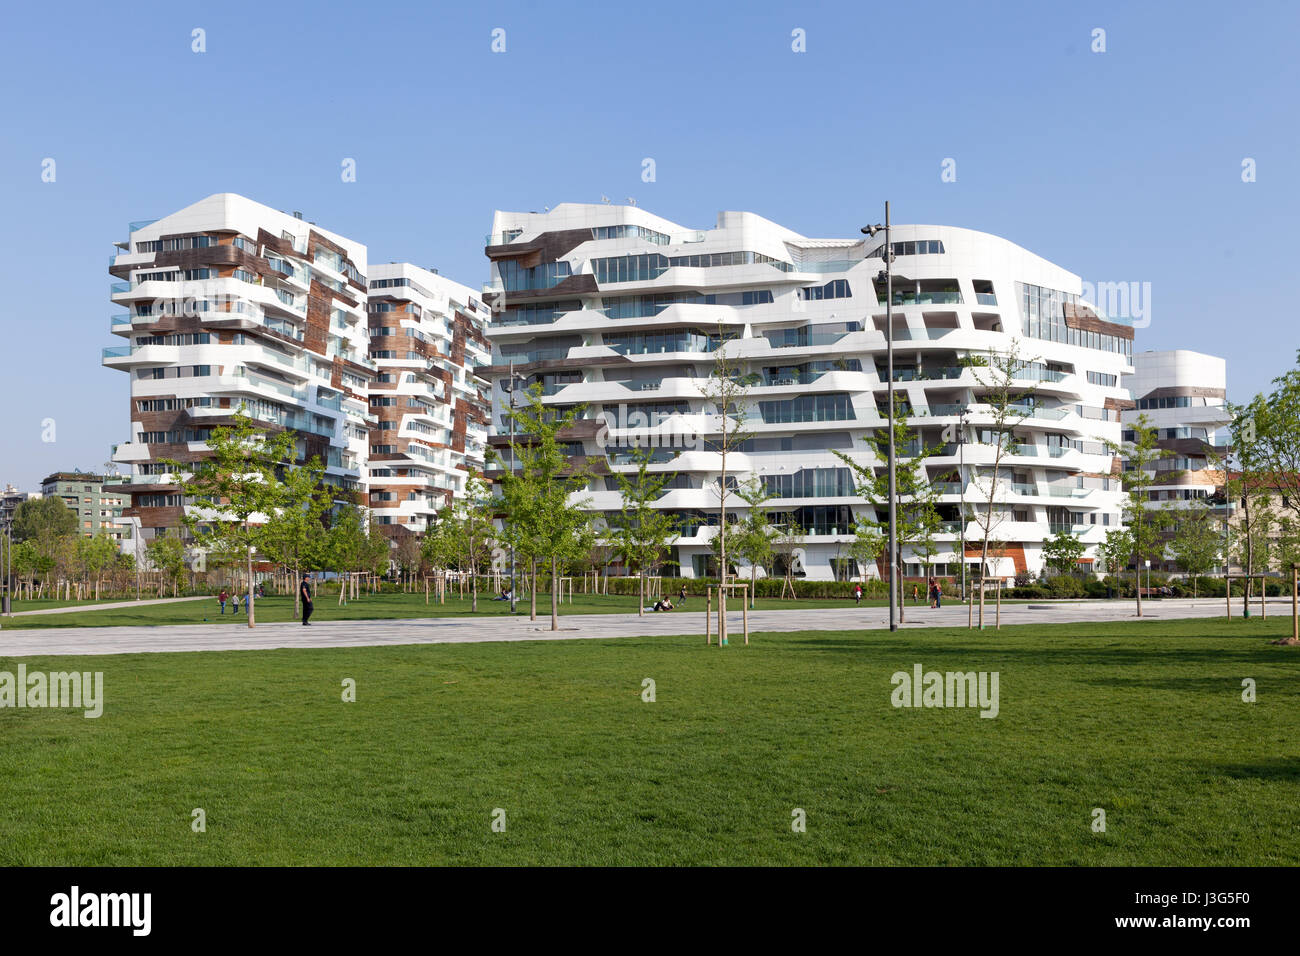 Zaha Hadid Residences at Citylife, a residential and business district completed in 2014. Milan, Italy. - Stock Image